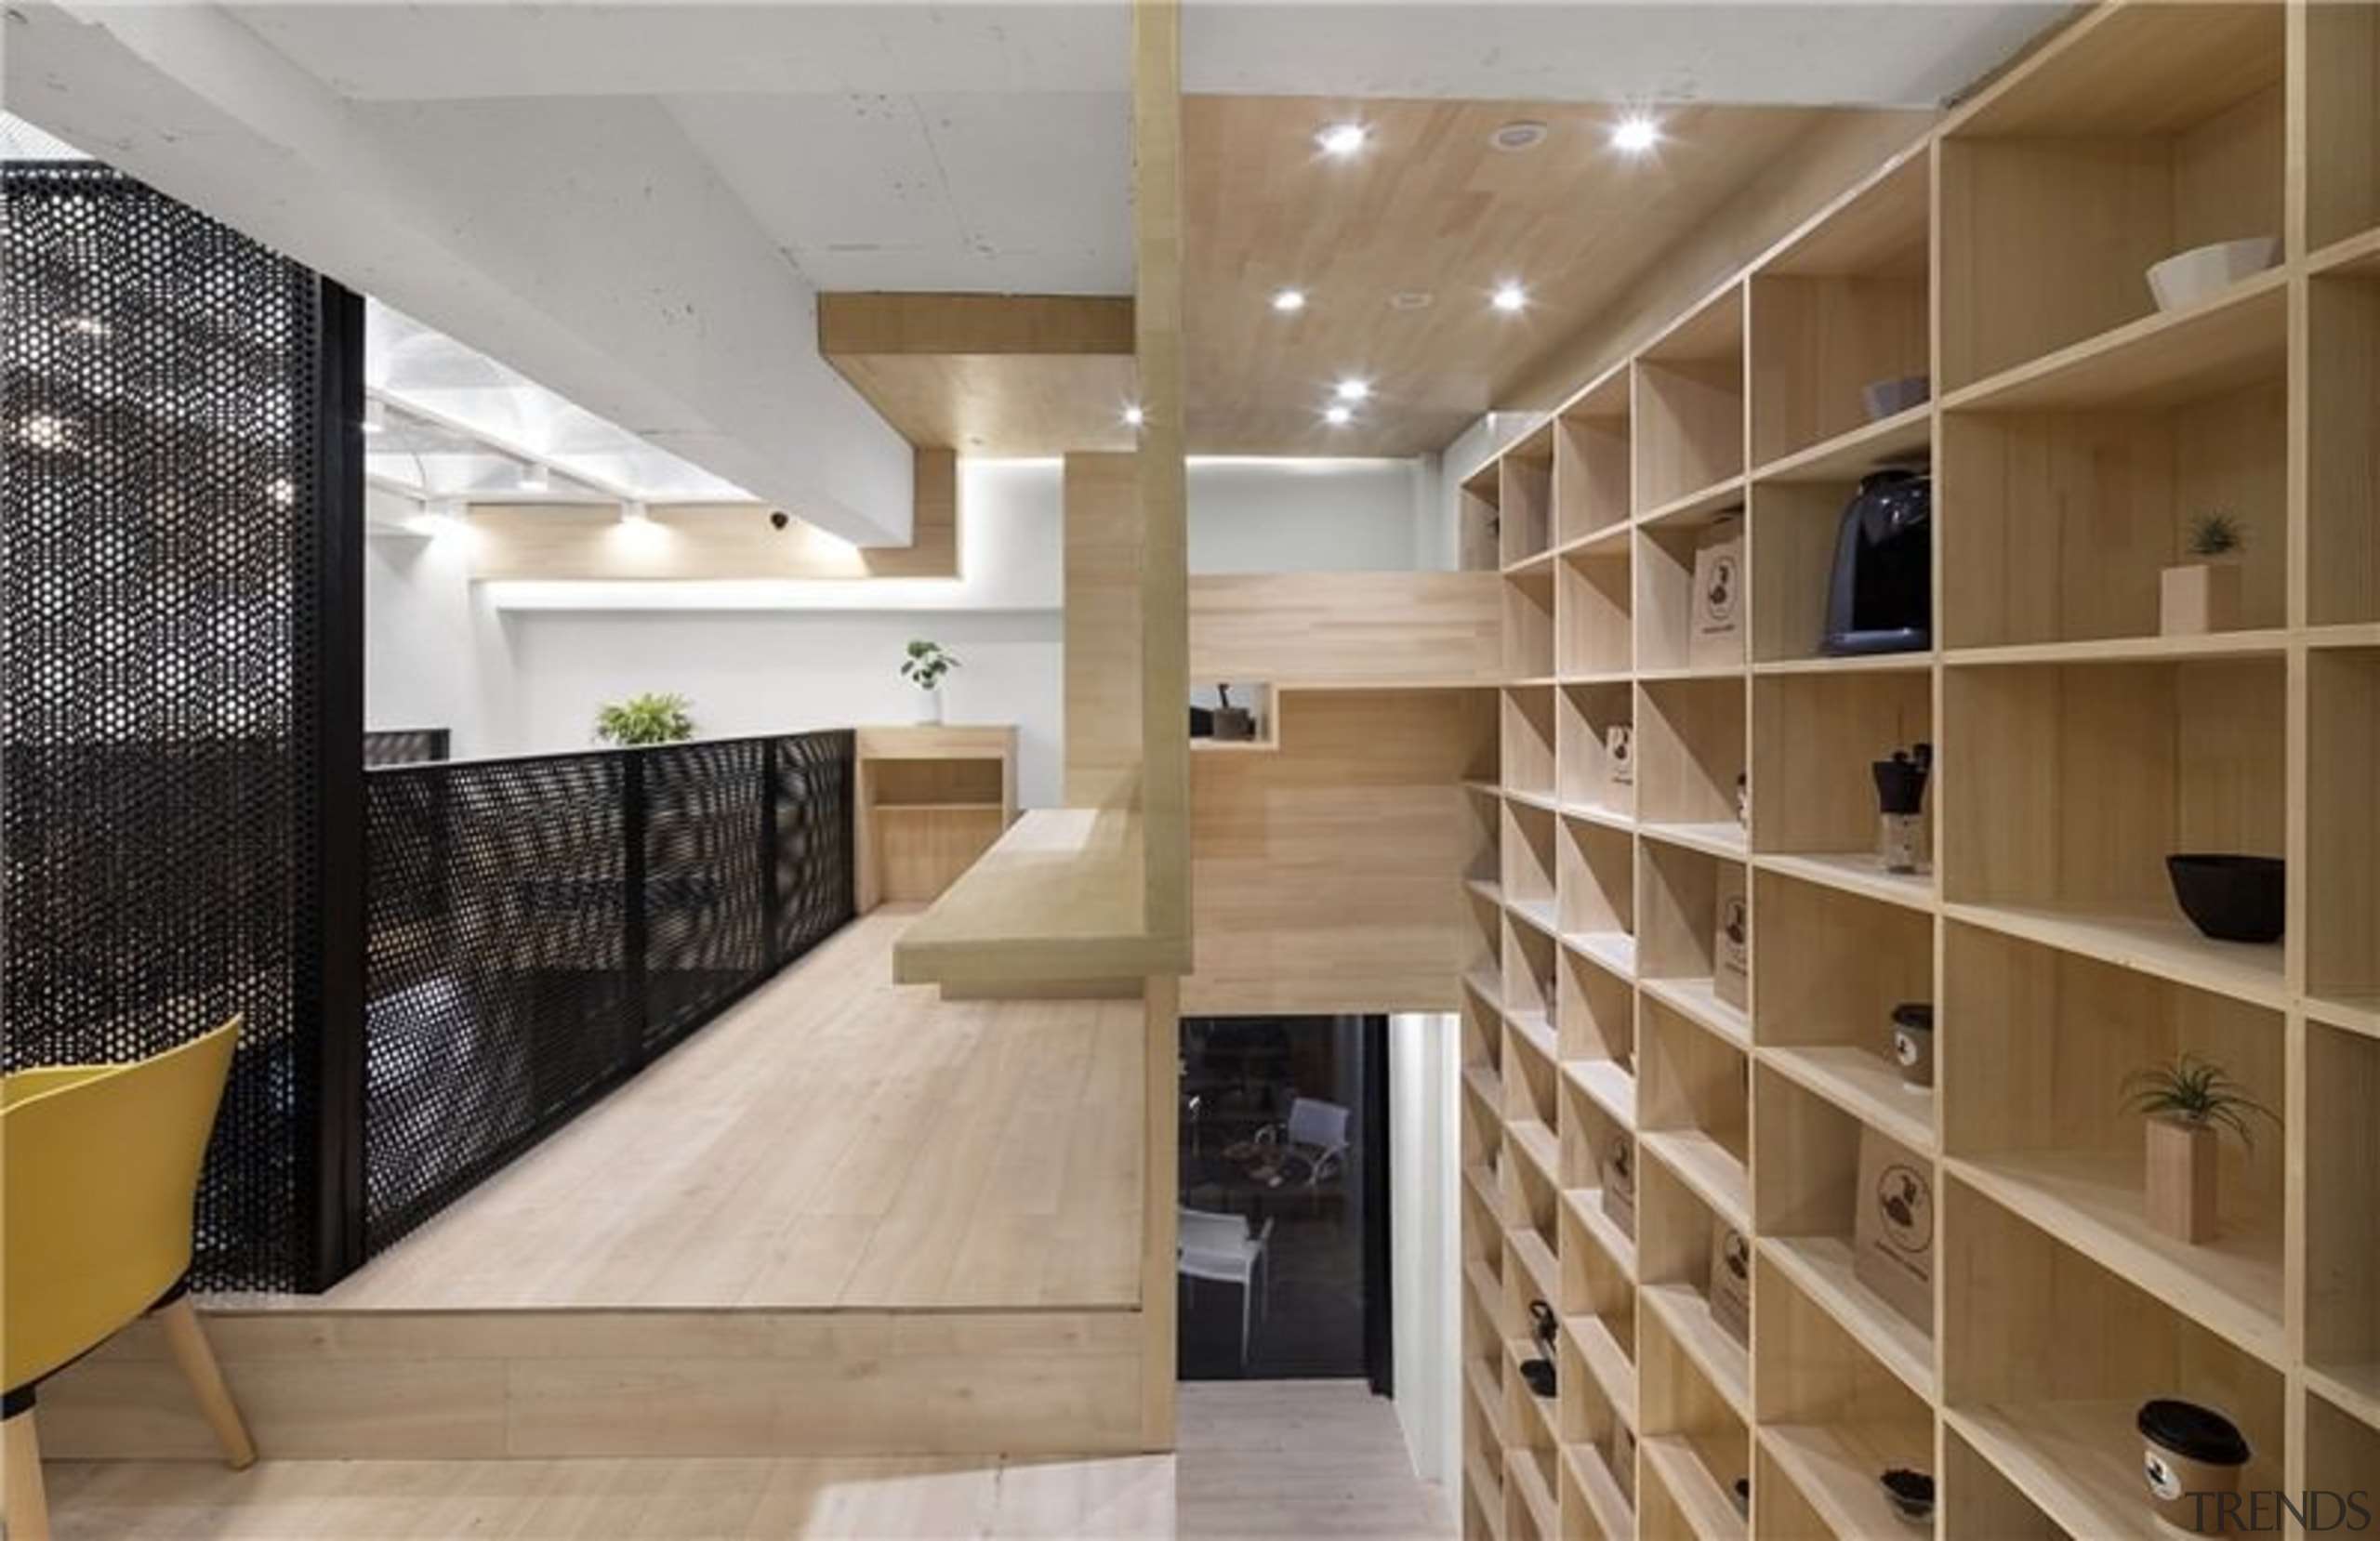 The balustrade separates the two levels - The cabinetry, ceiling, closet, floor, flooring, furniture, interior design, lobby, room, shelving, brown, gray